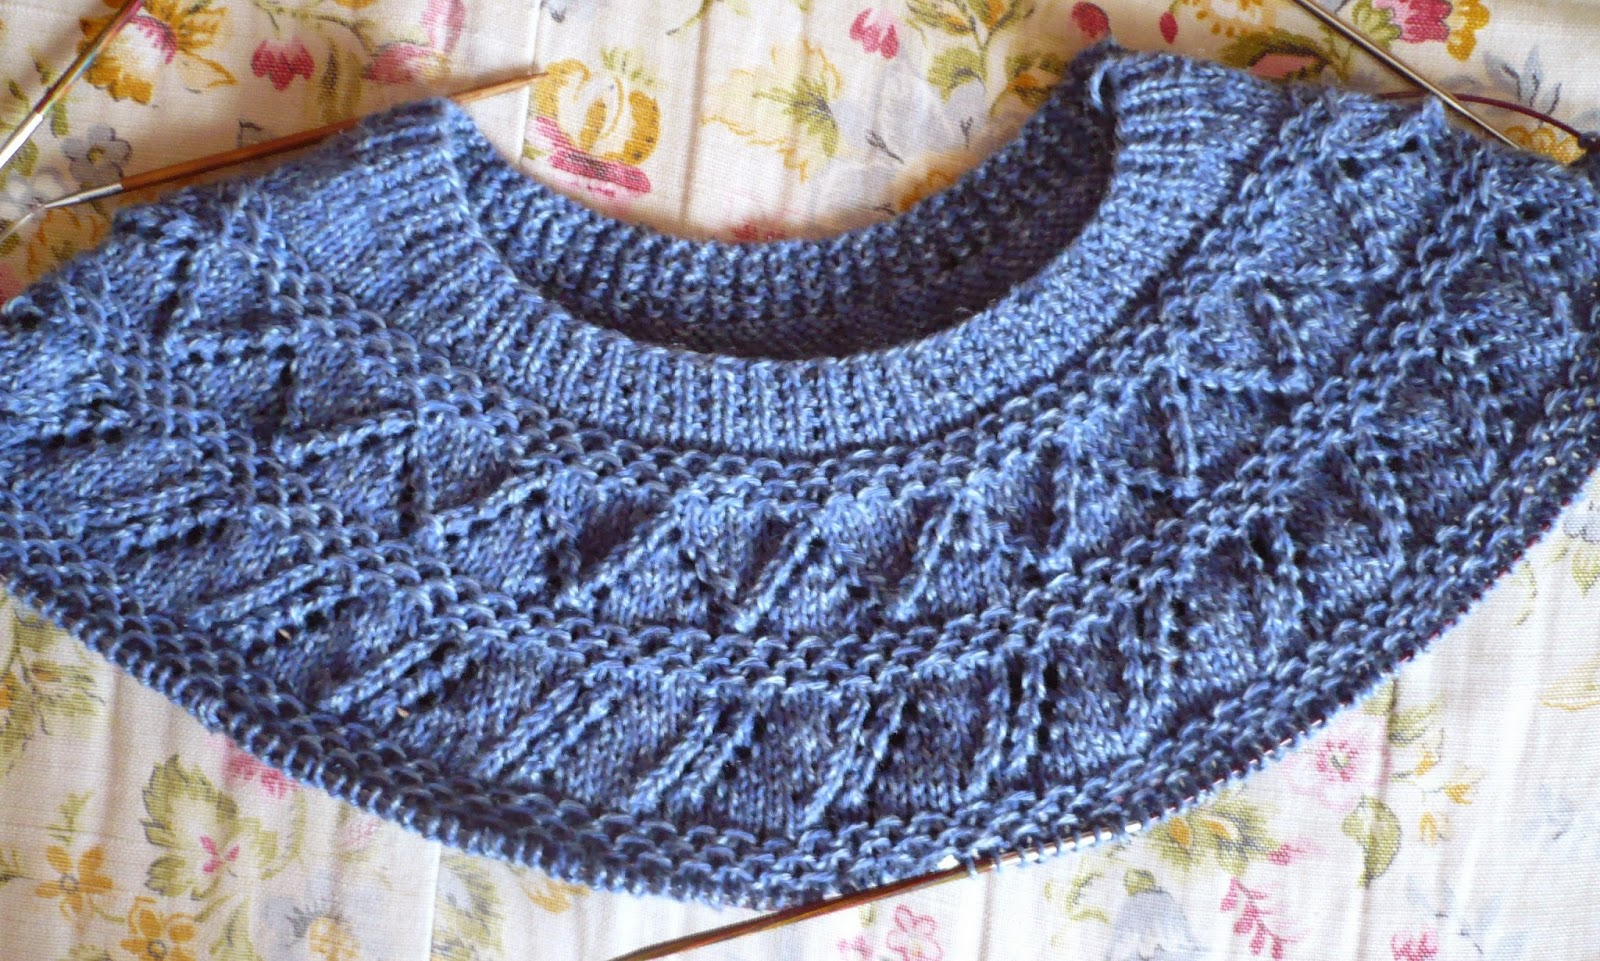 Cabin fever sisters knit circular yoke ii it also has a larger neck opening with a ribbed pattern which i would also put on the cuffs and bottom edge same basic circular yoke sweater bankloansurffo Images